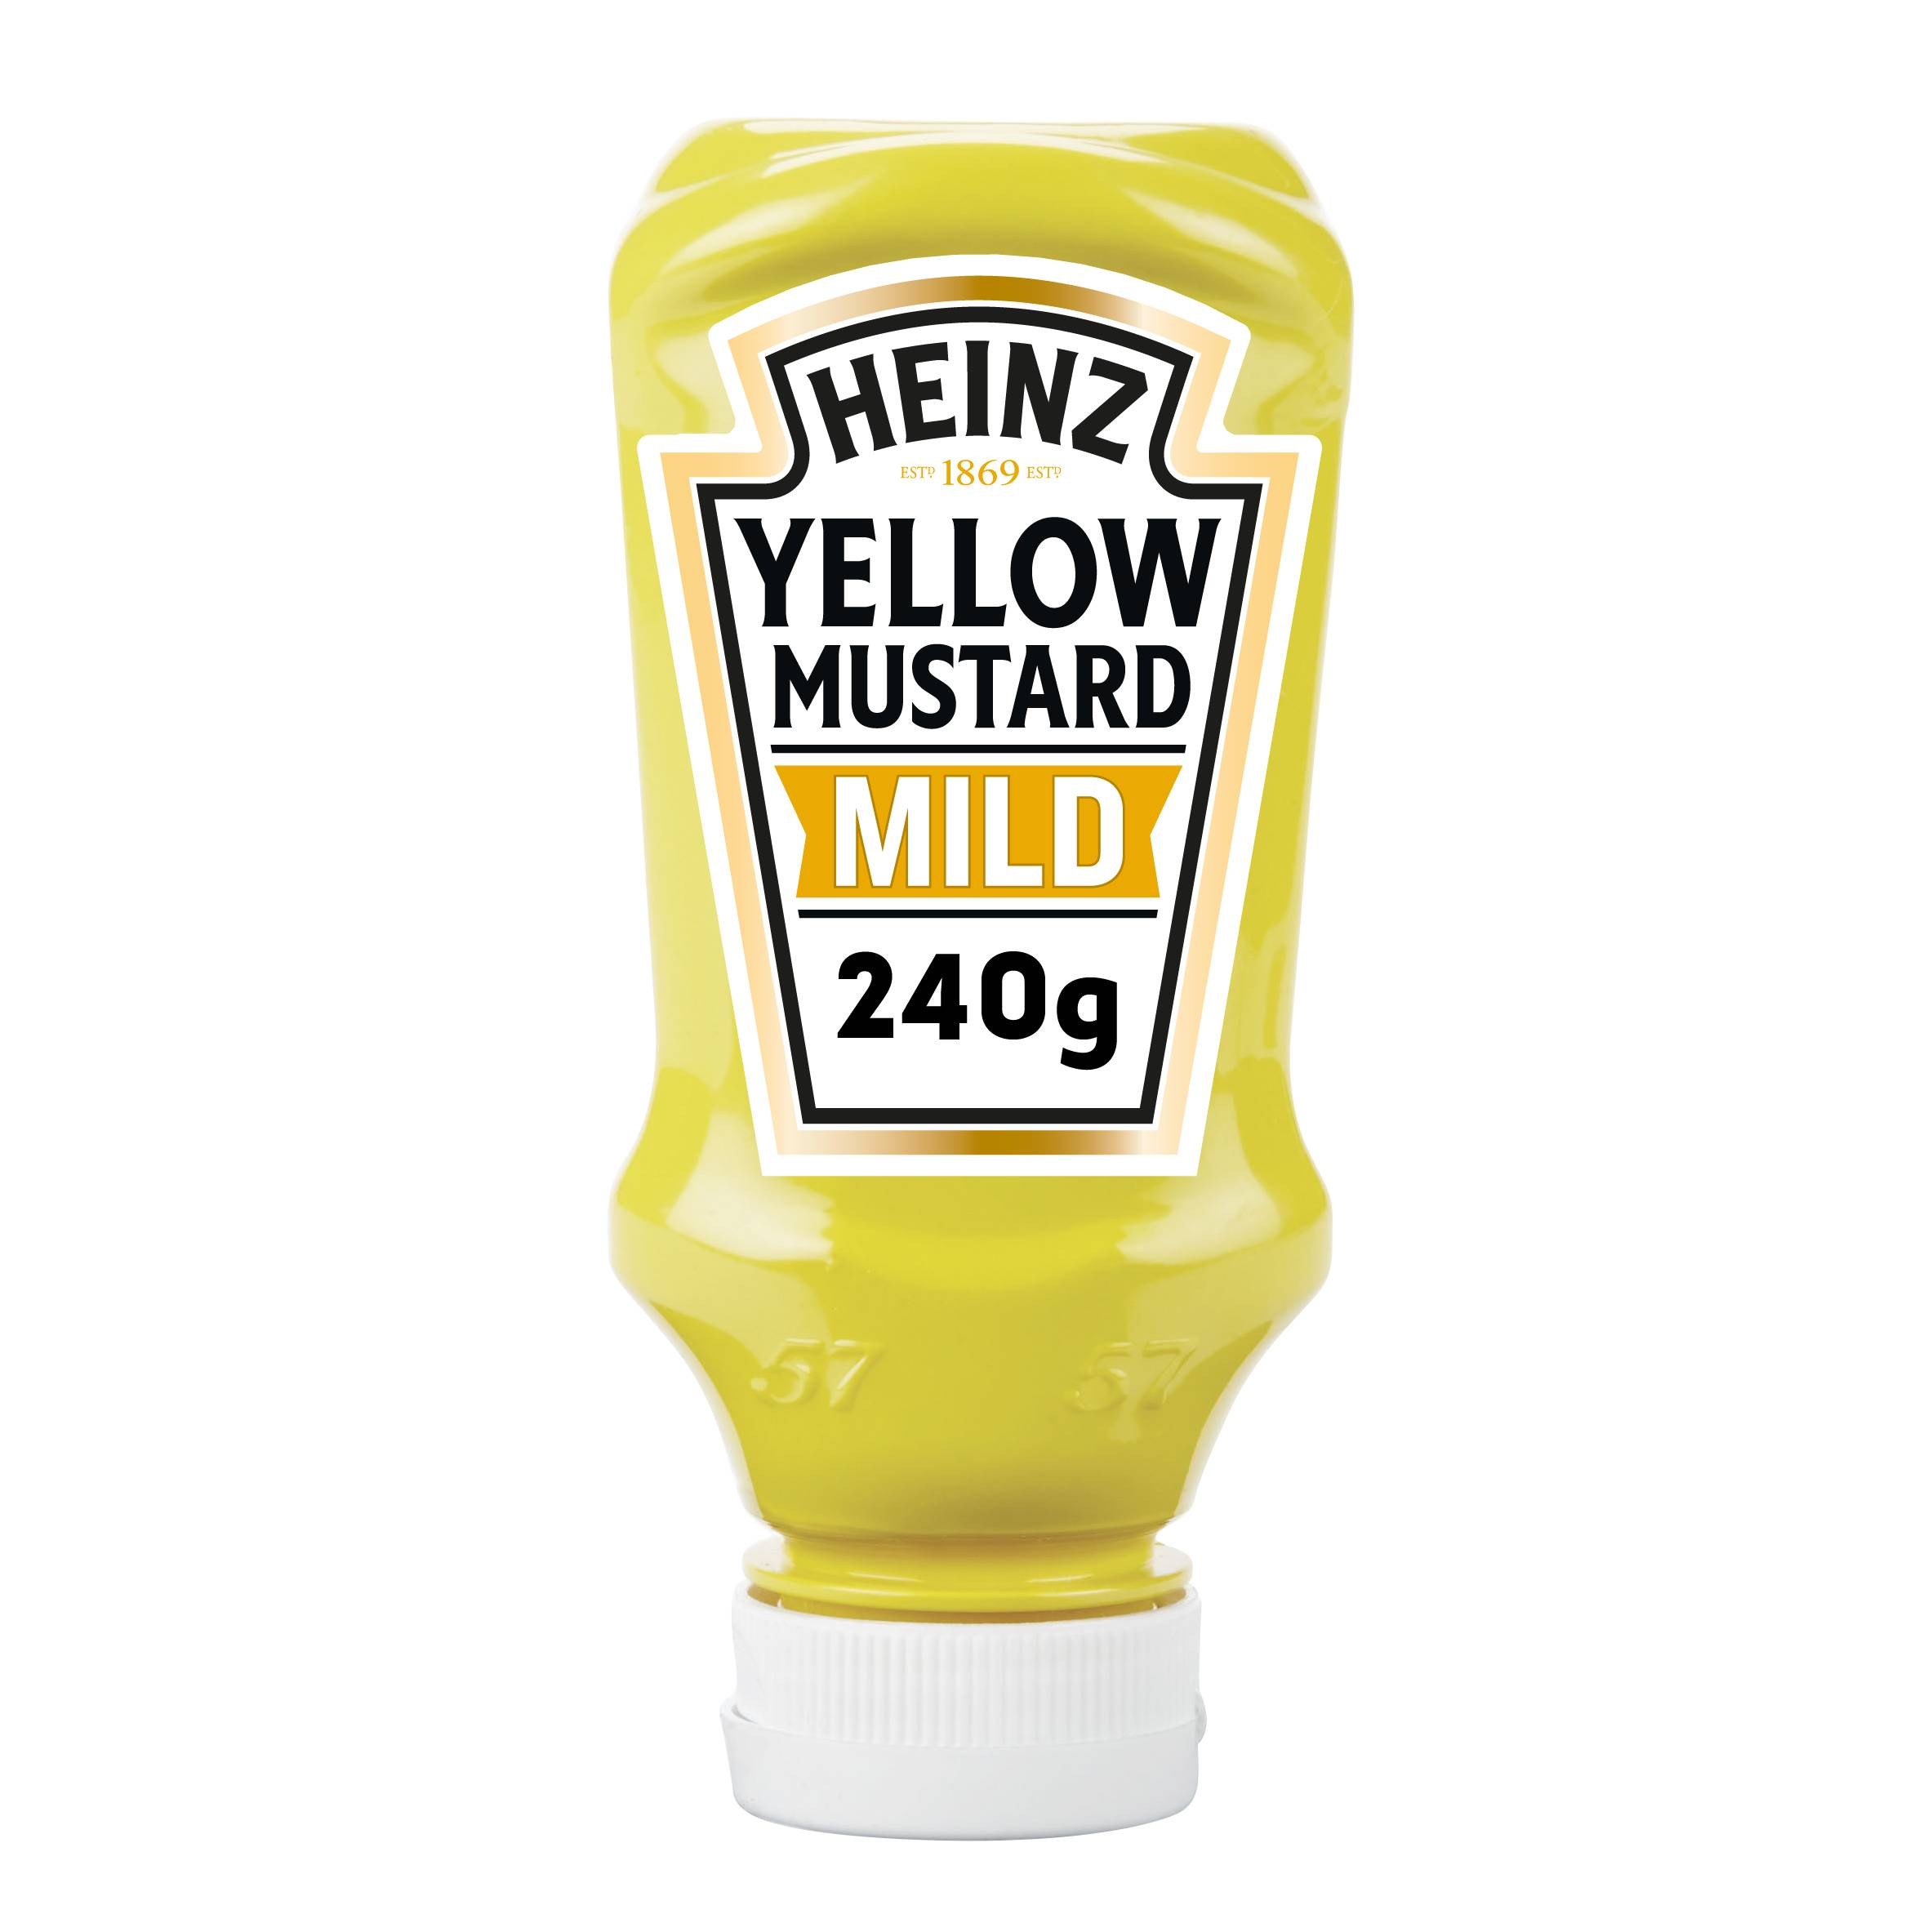 Heinz Yellow Mustard Mild 220ml Top Down image